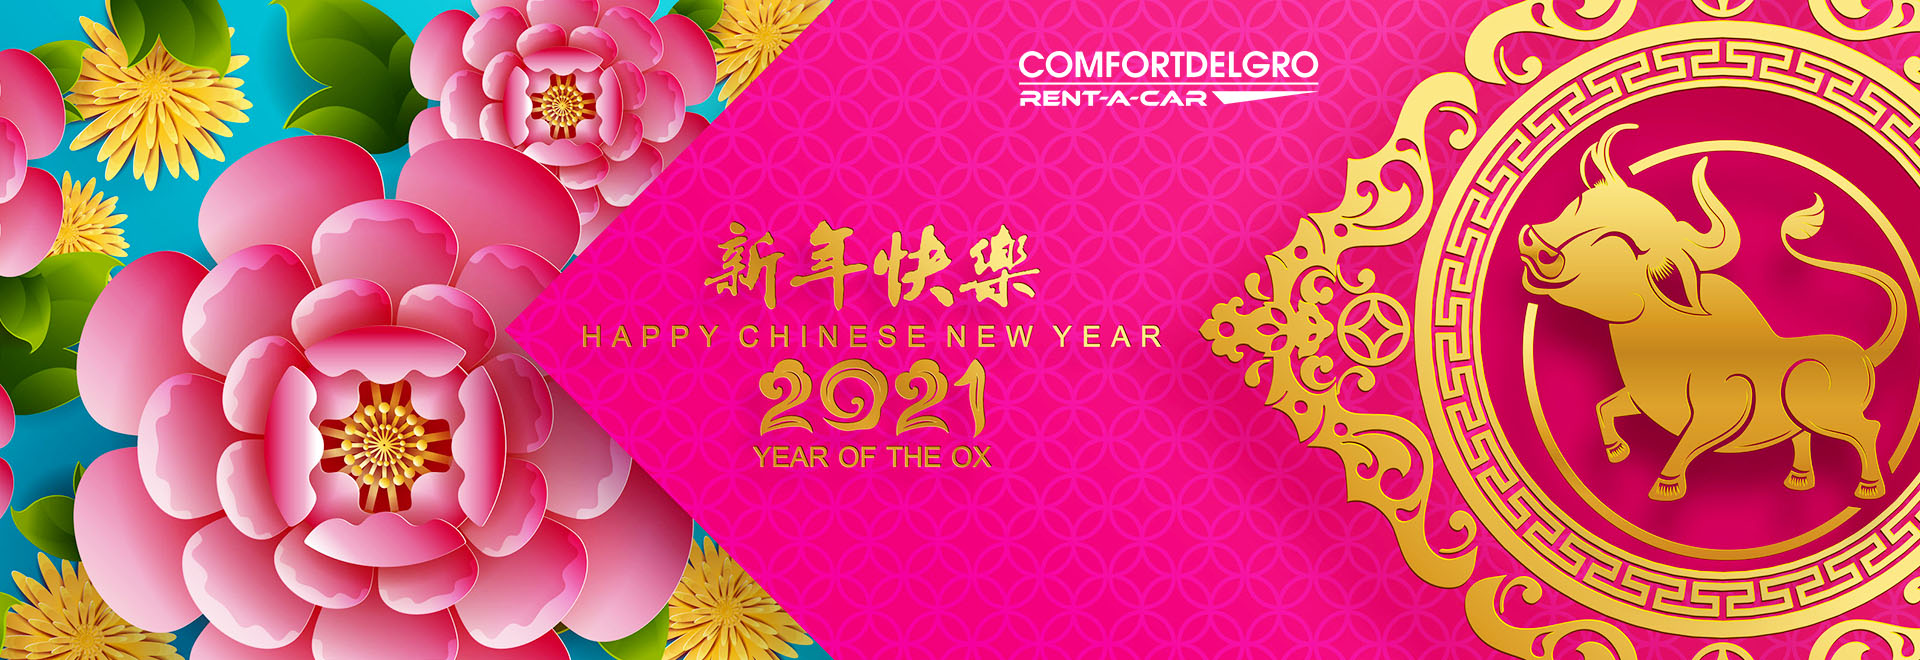 CNY 2021 Car Rental Promotion